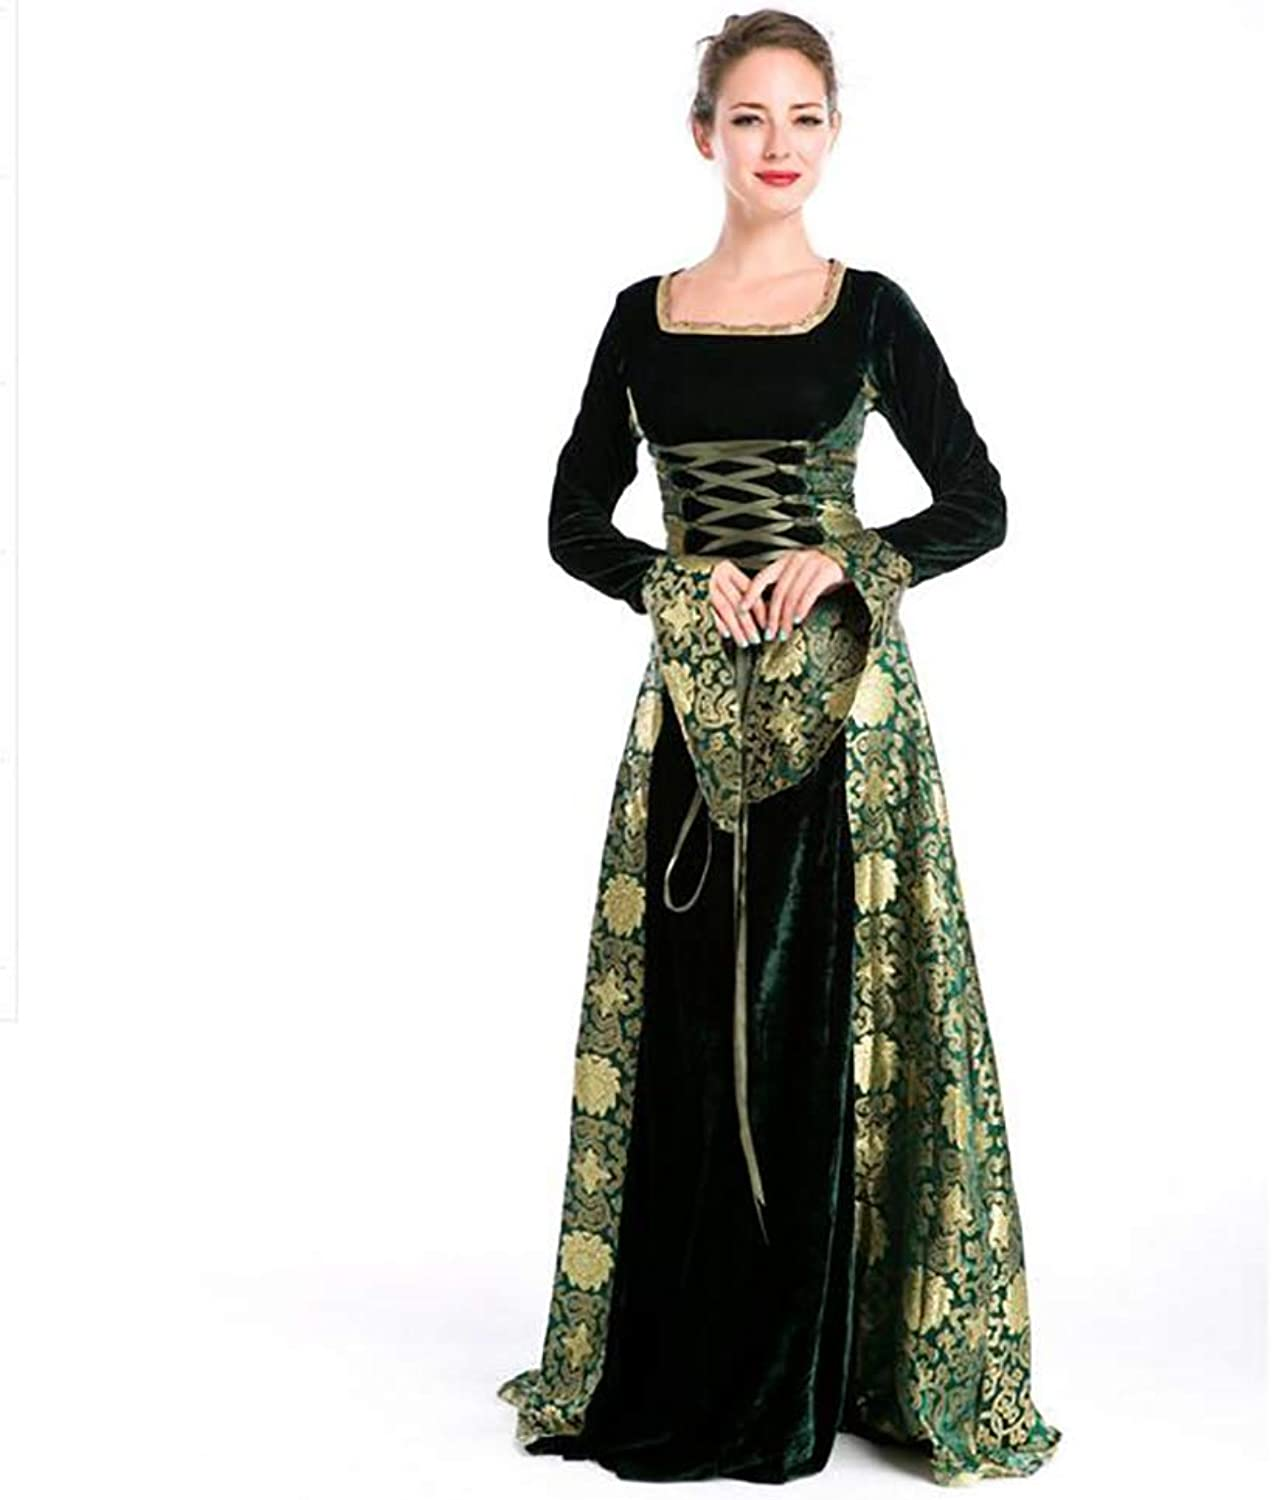 SHANGXIAN Halloween Women Vintage Dresses Style Cosplay Costume Nightclubs Stage Performance Dress,Onesize